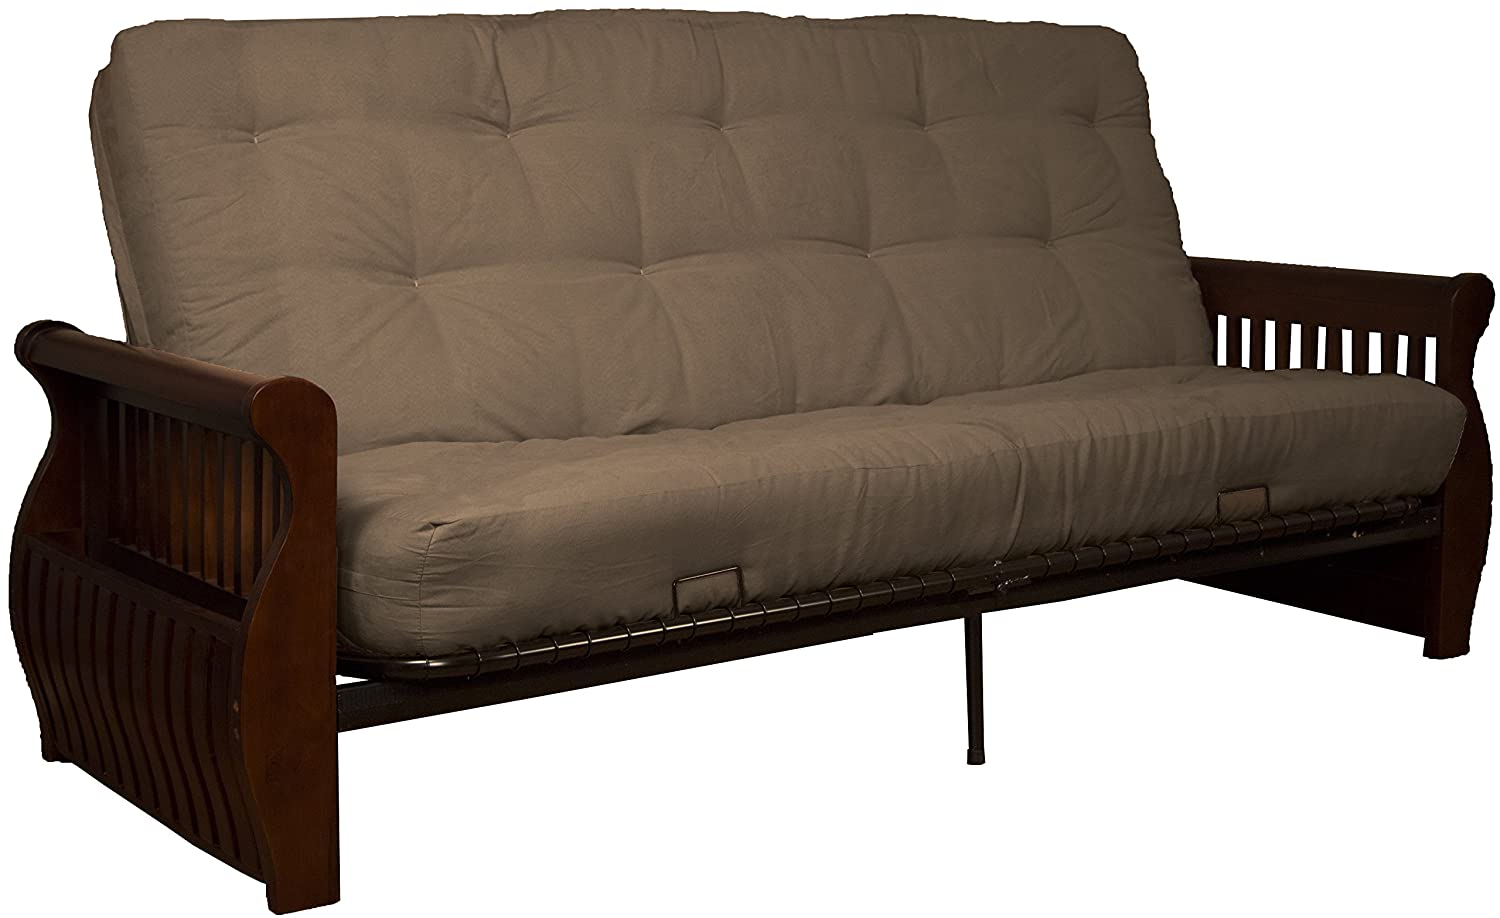 Epic Furnishings Laguna 10 Loft Inner Spring Futon Sofa Sleeper Bed - Queen-size - Walnut Arm Finish - Microfiber Suede